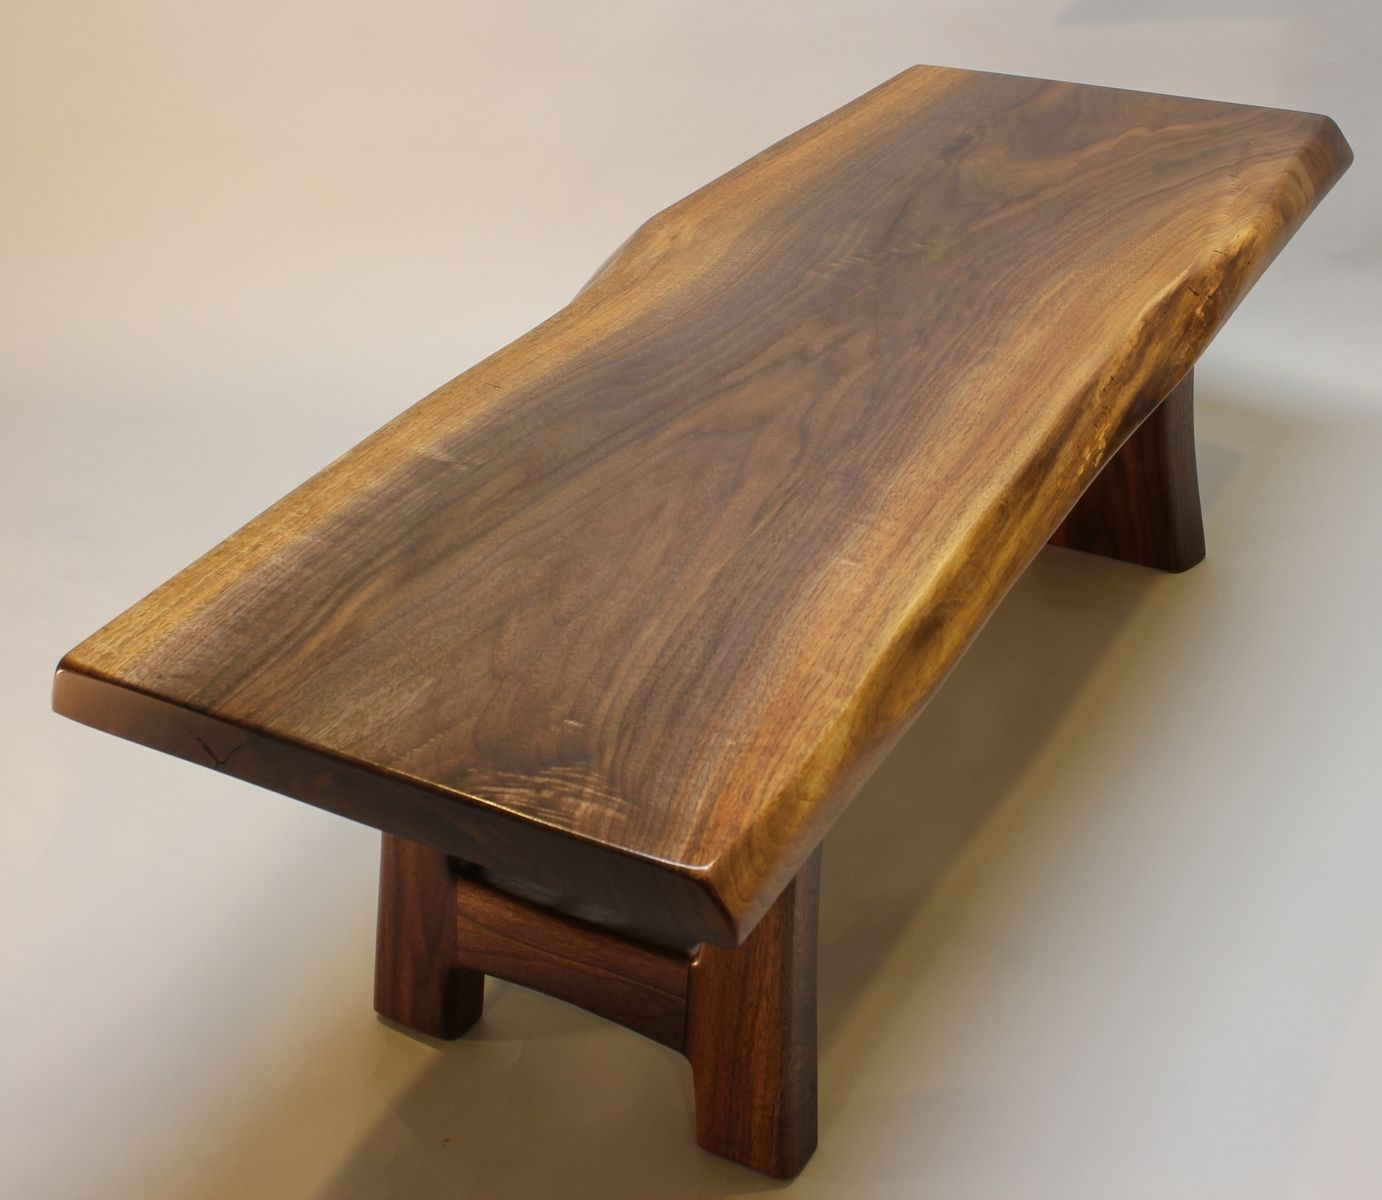 Handmade Black Walnut Live Edge Coffee Table By JR